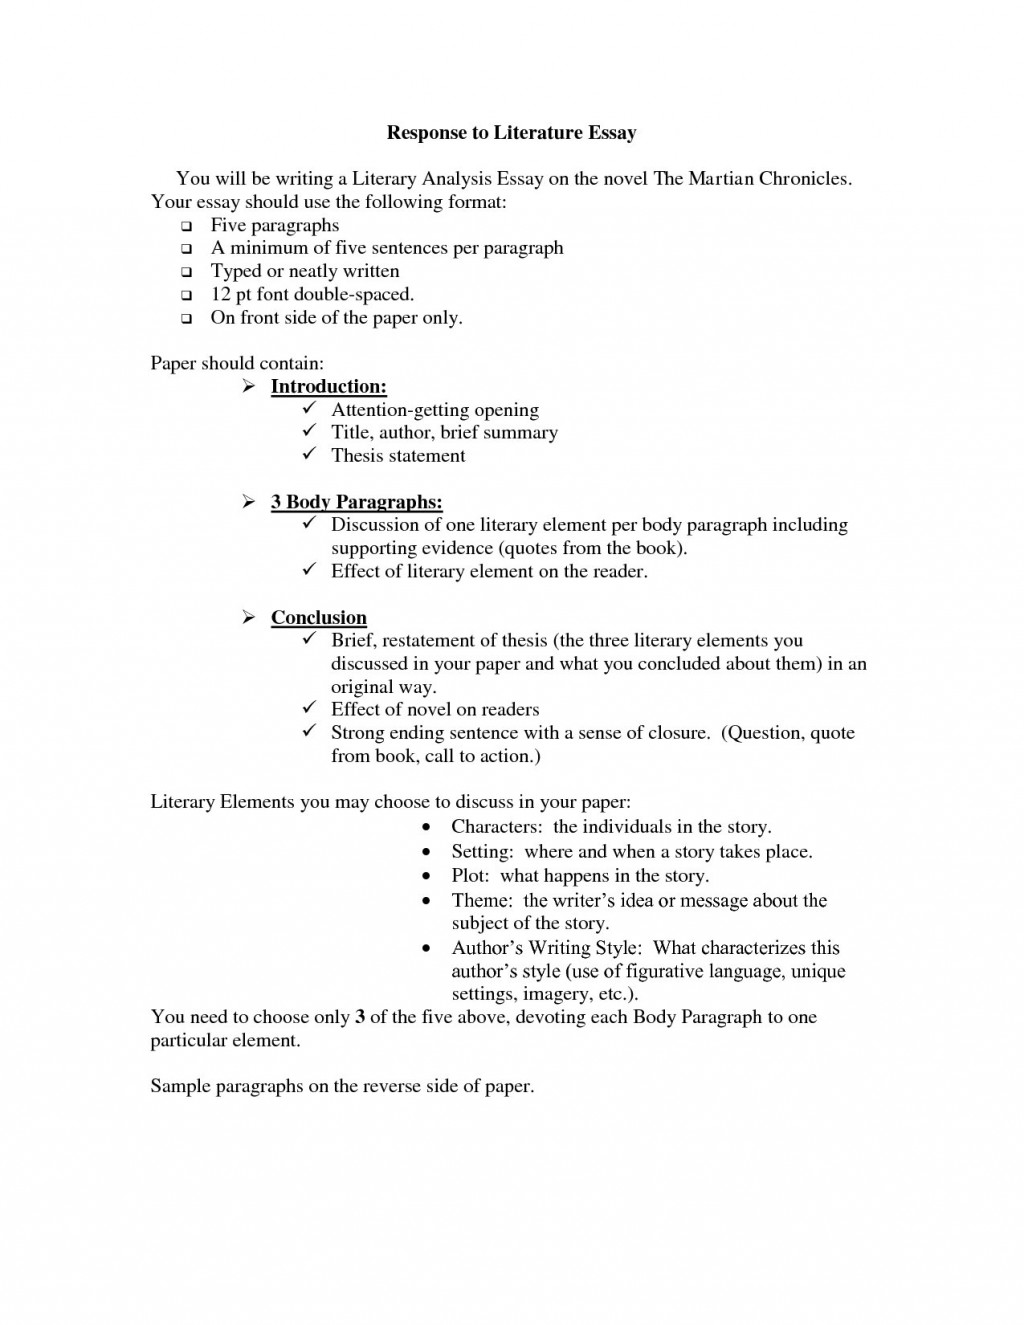 006 Essay Example Brilliant Ideas Of Resume Cv Cover Letter Poetry Reflection Paper Poem Parison Creative Explication Formidable Trifles Questions Feminism Topics Large